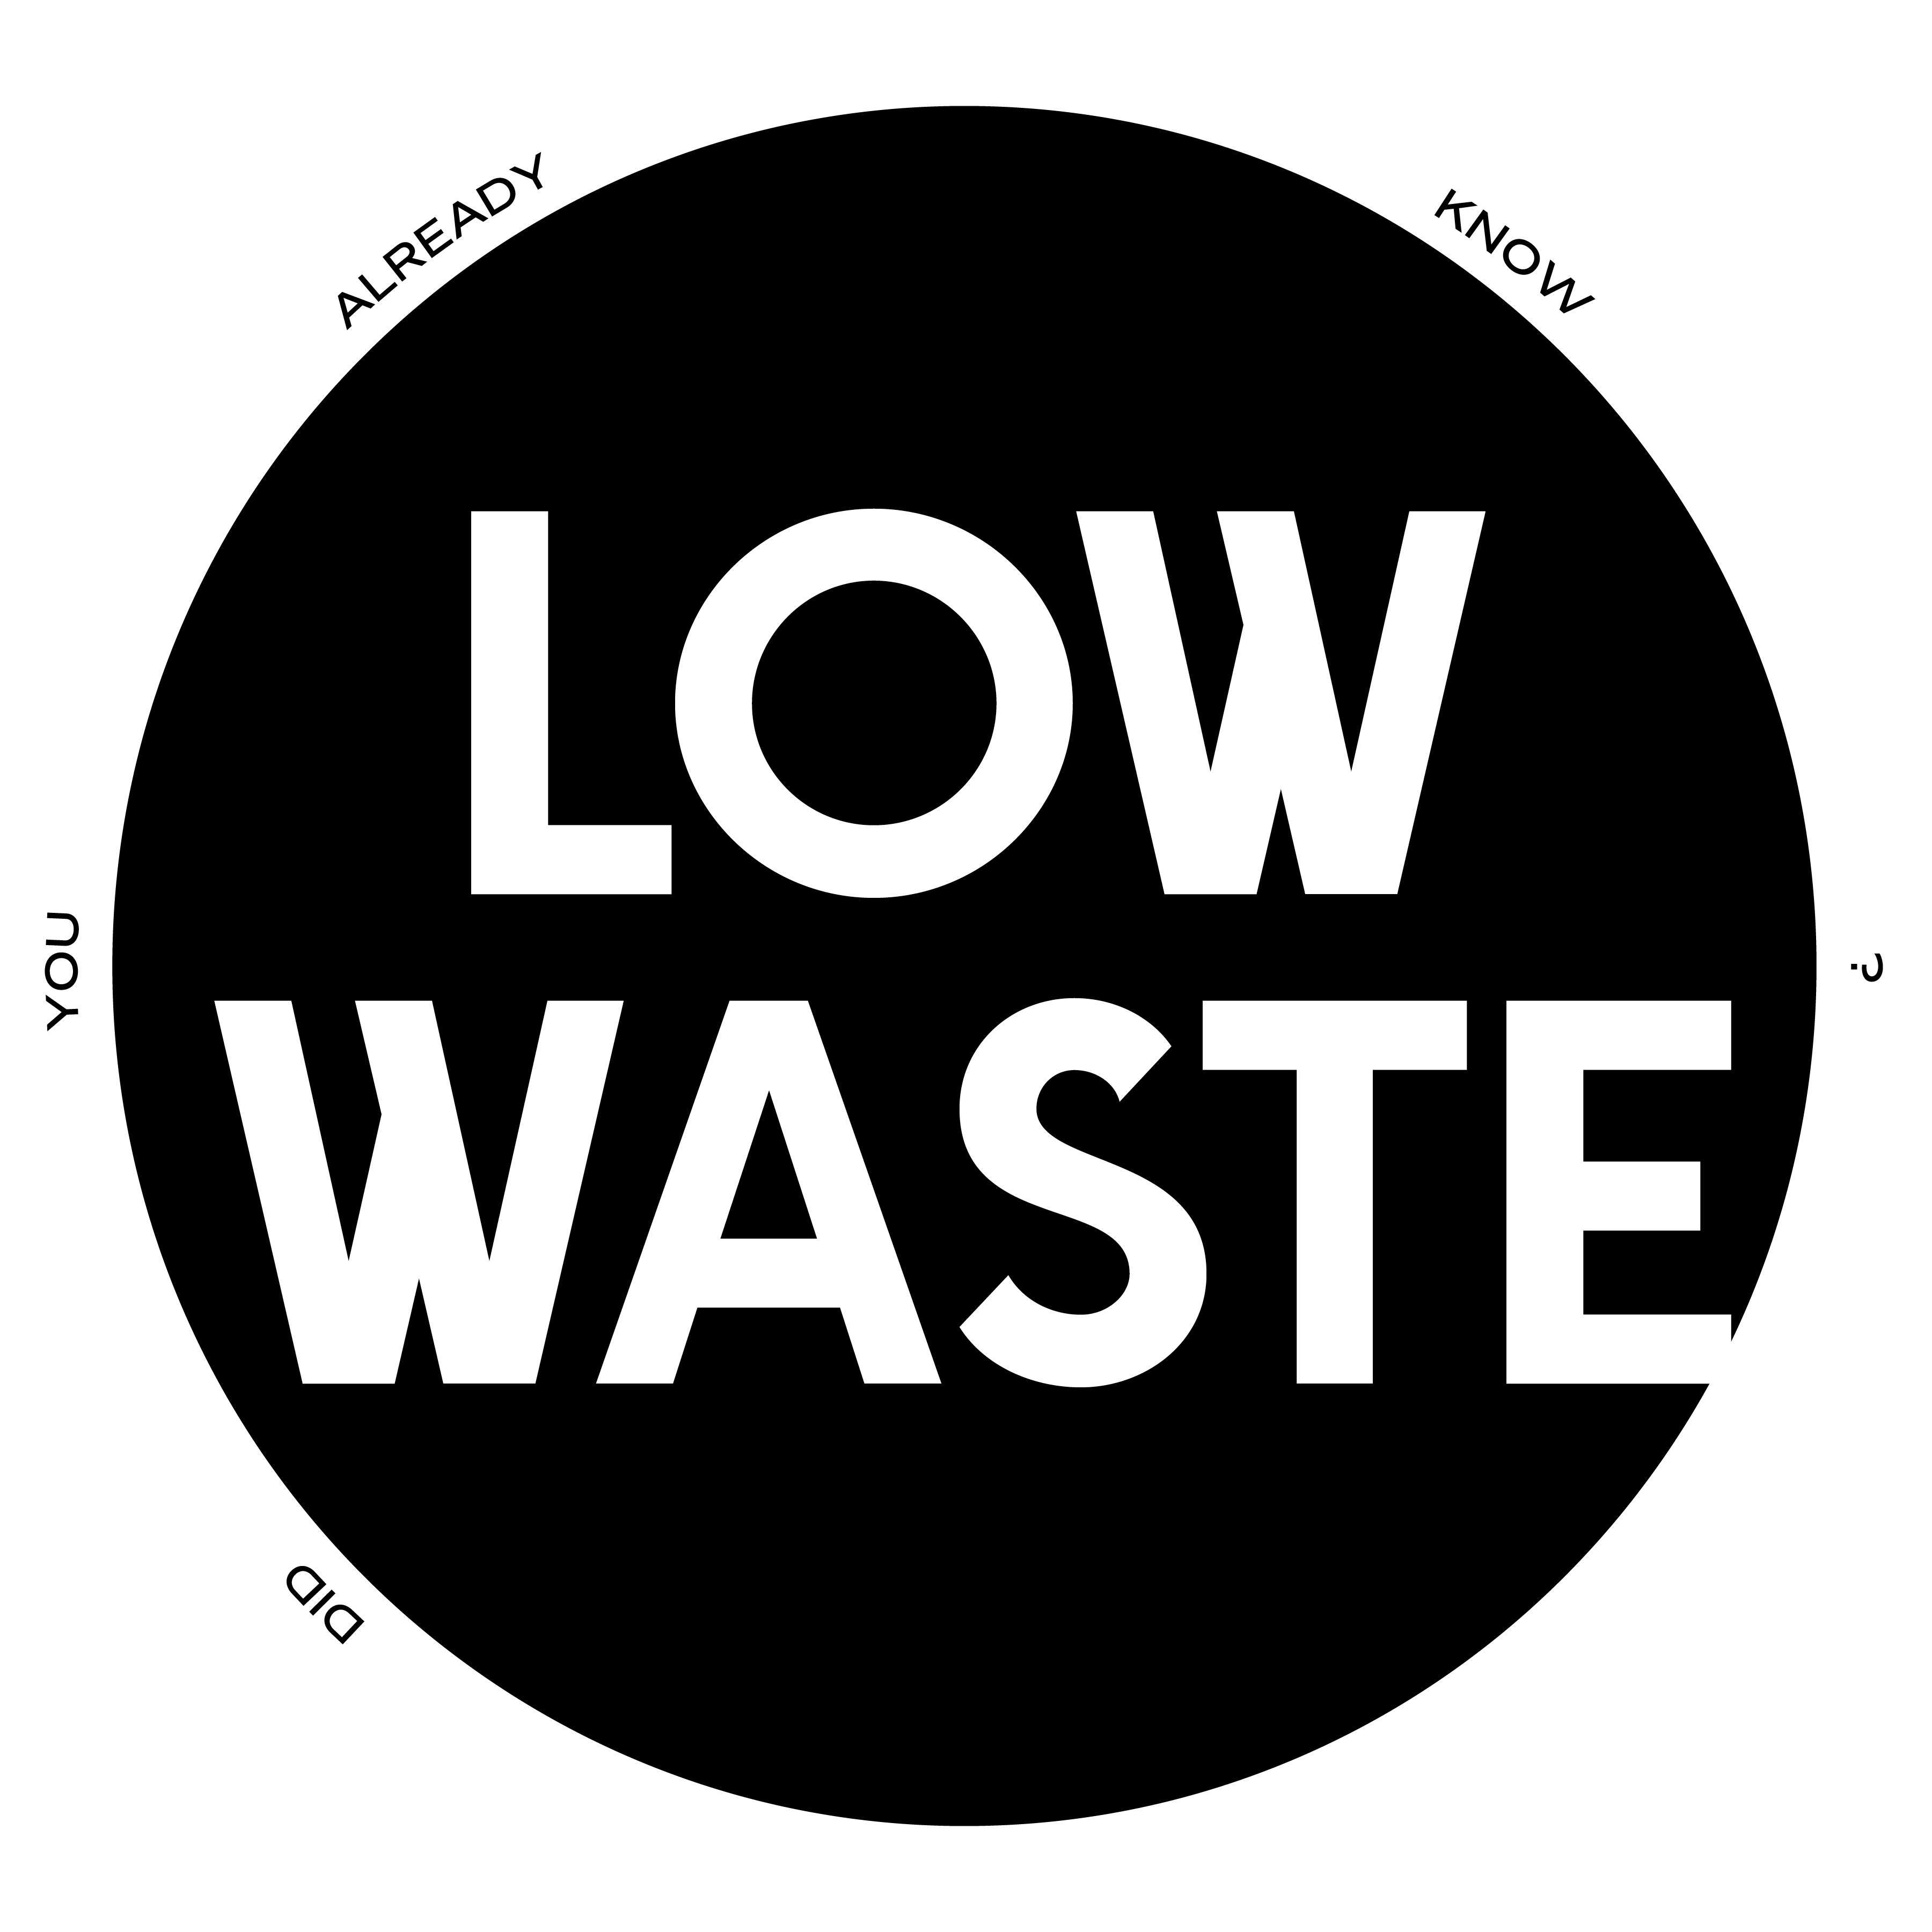 low waste